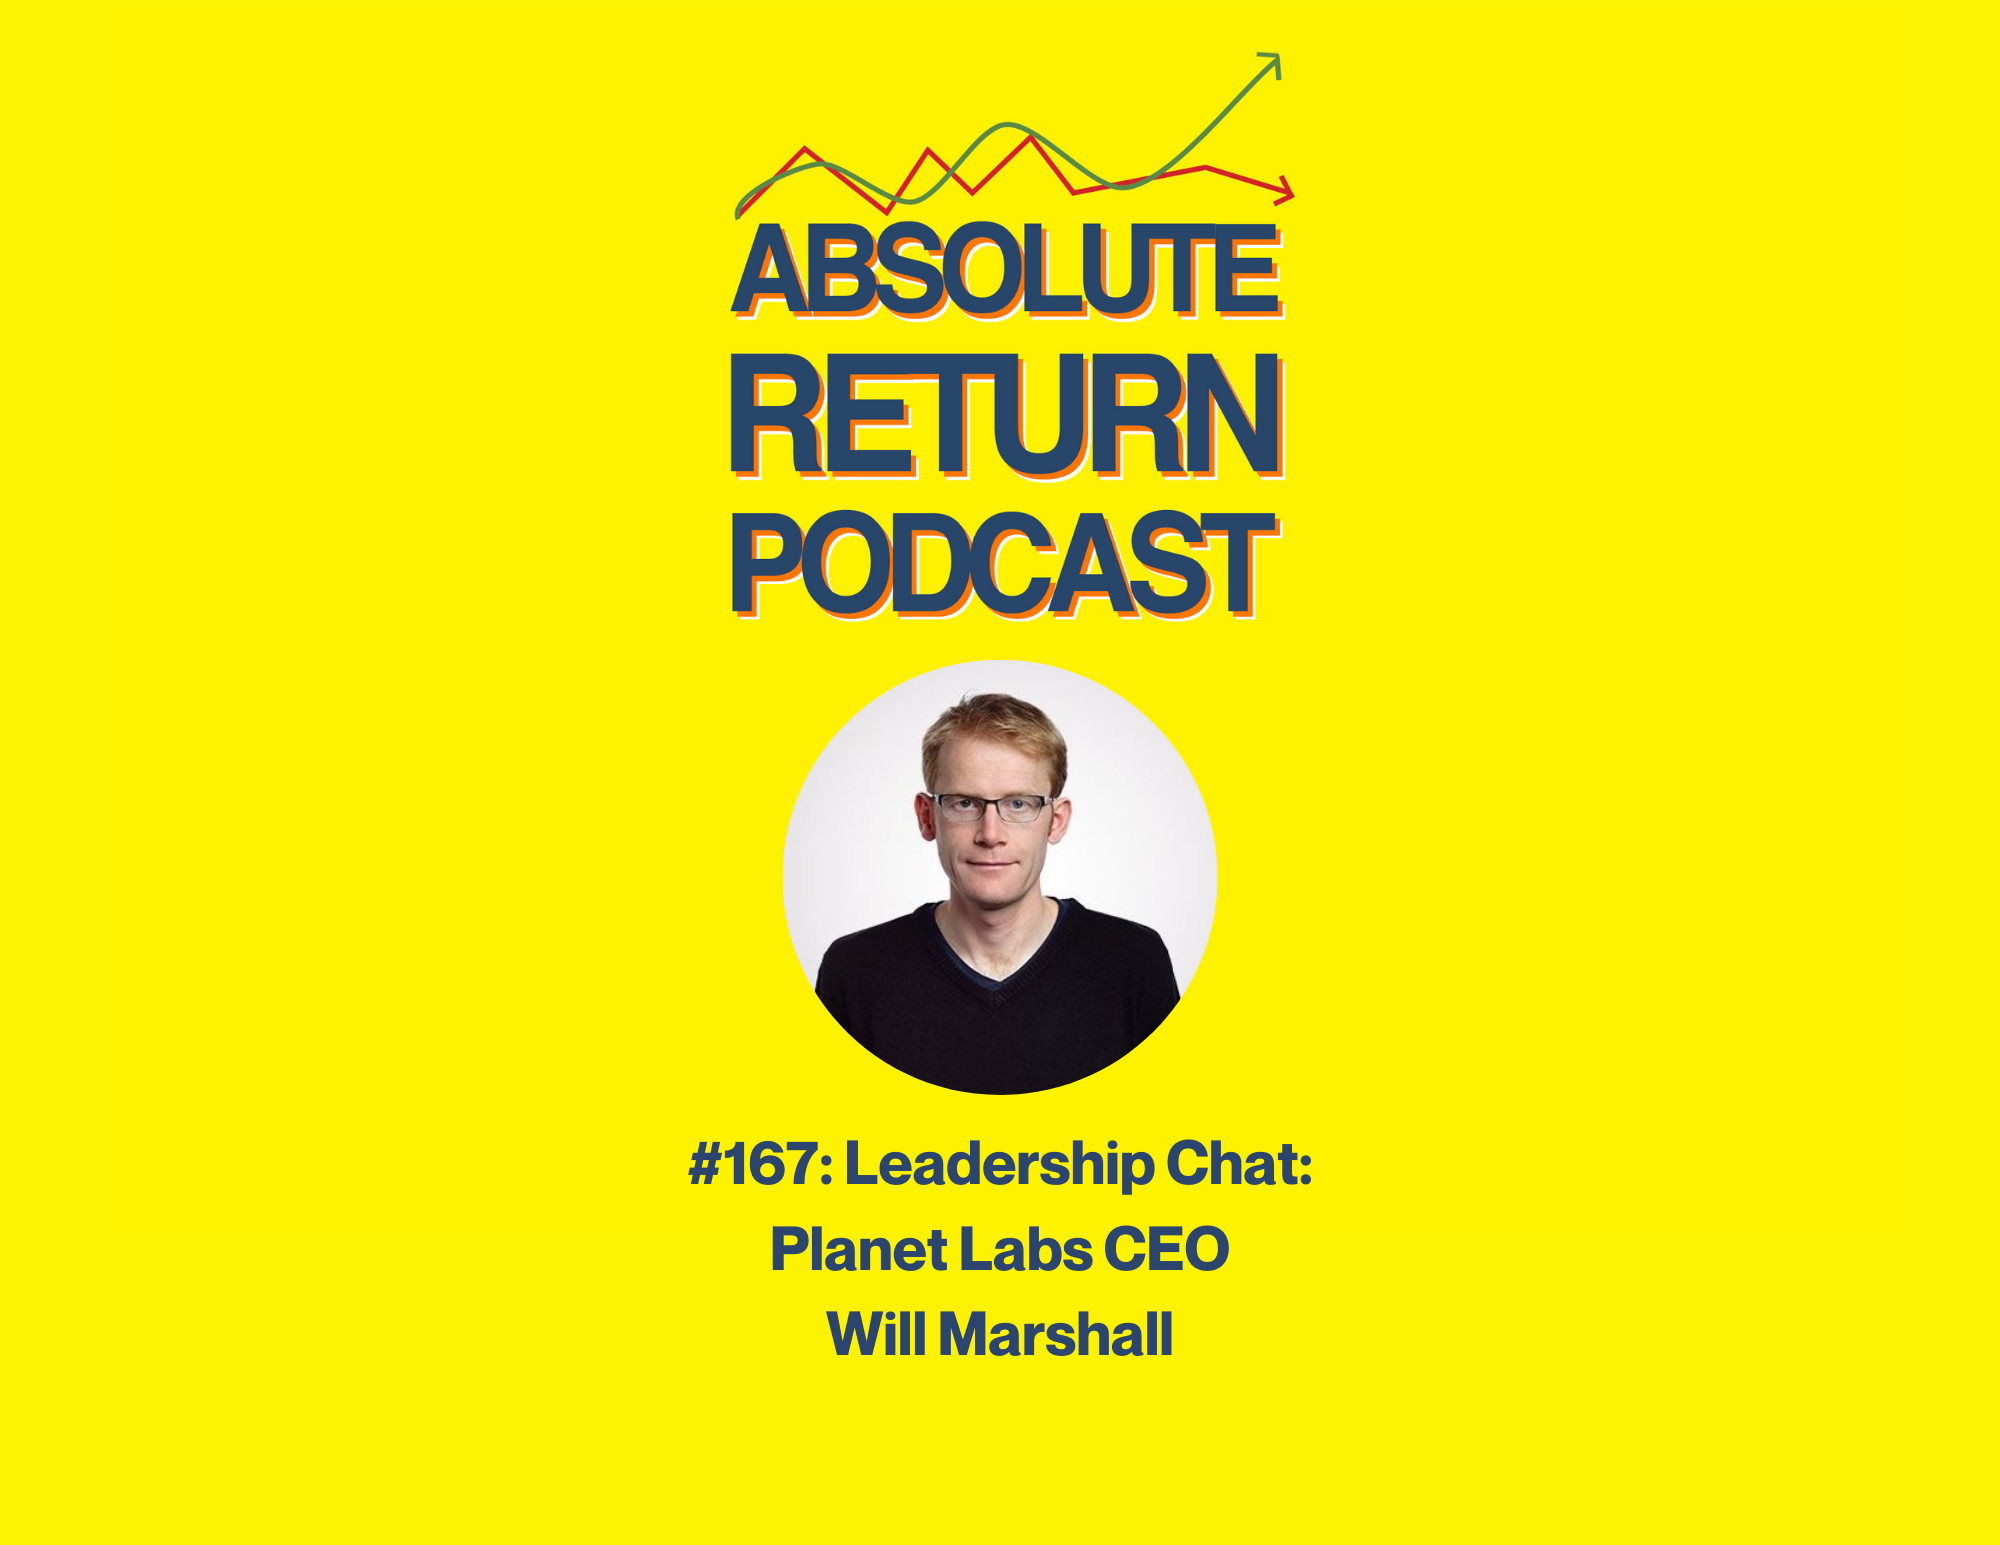 Absolute Return Podcast #167: Leadership Chat: Planet Labs CEO Will Marshall